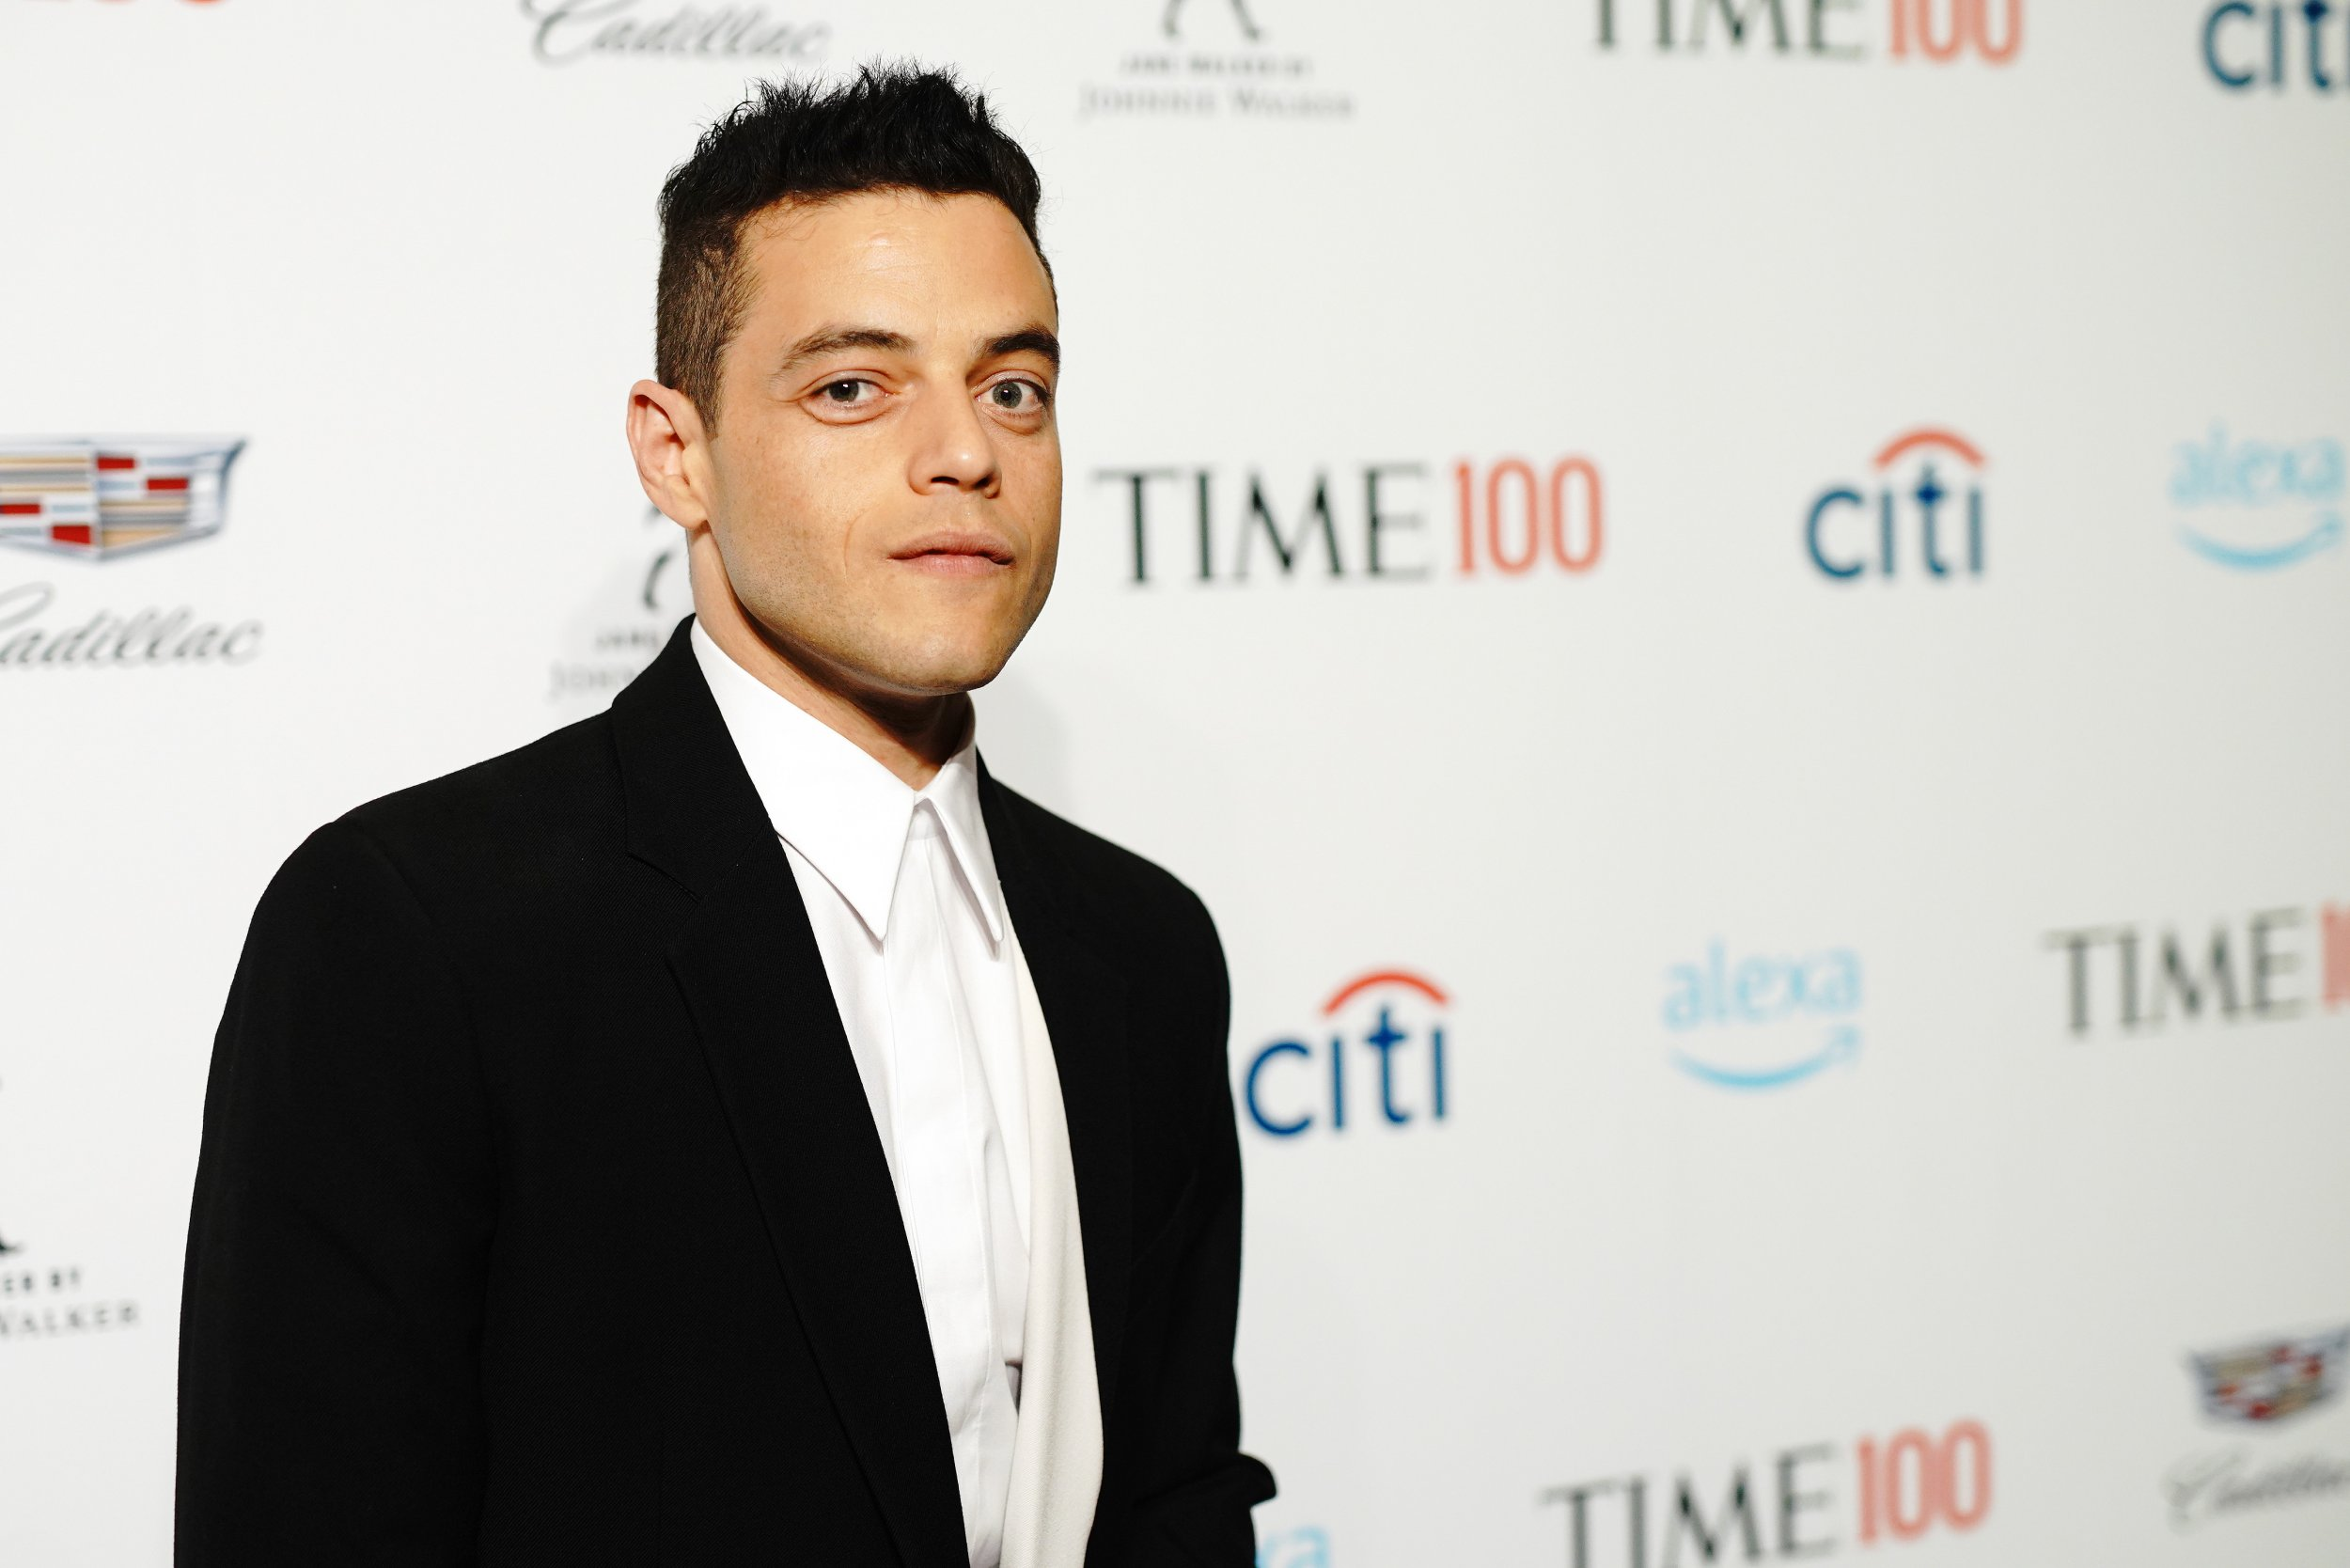 Rami Malek Confirmed for Bond 25